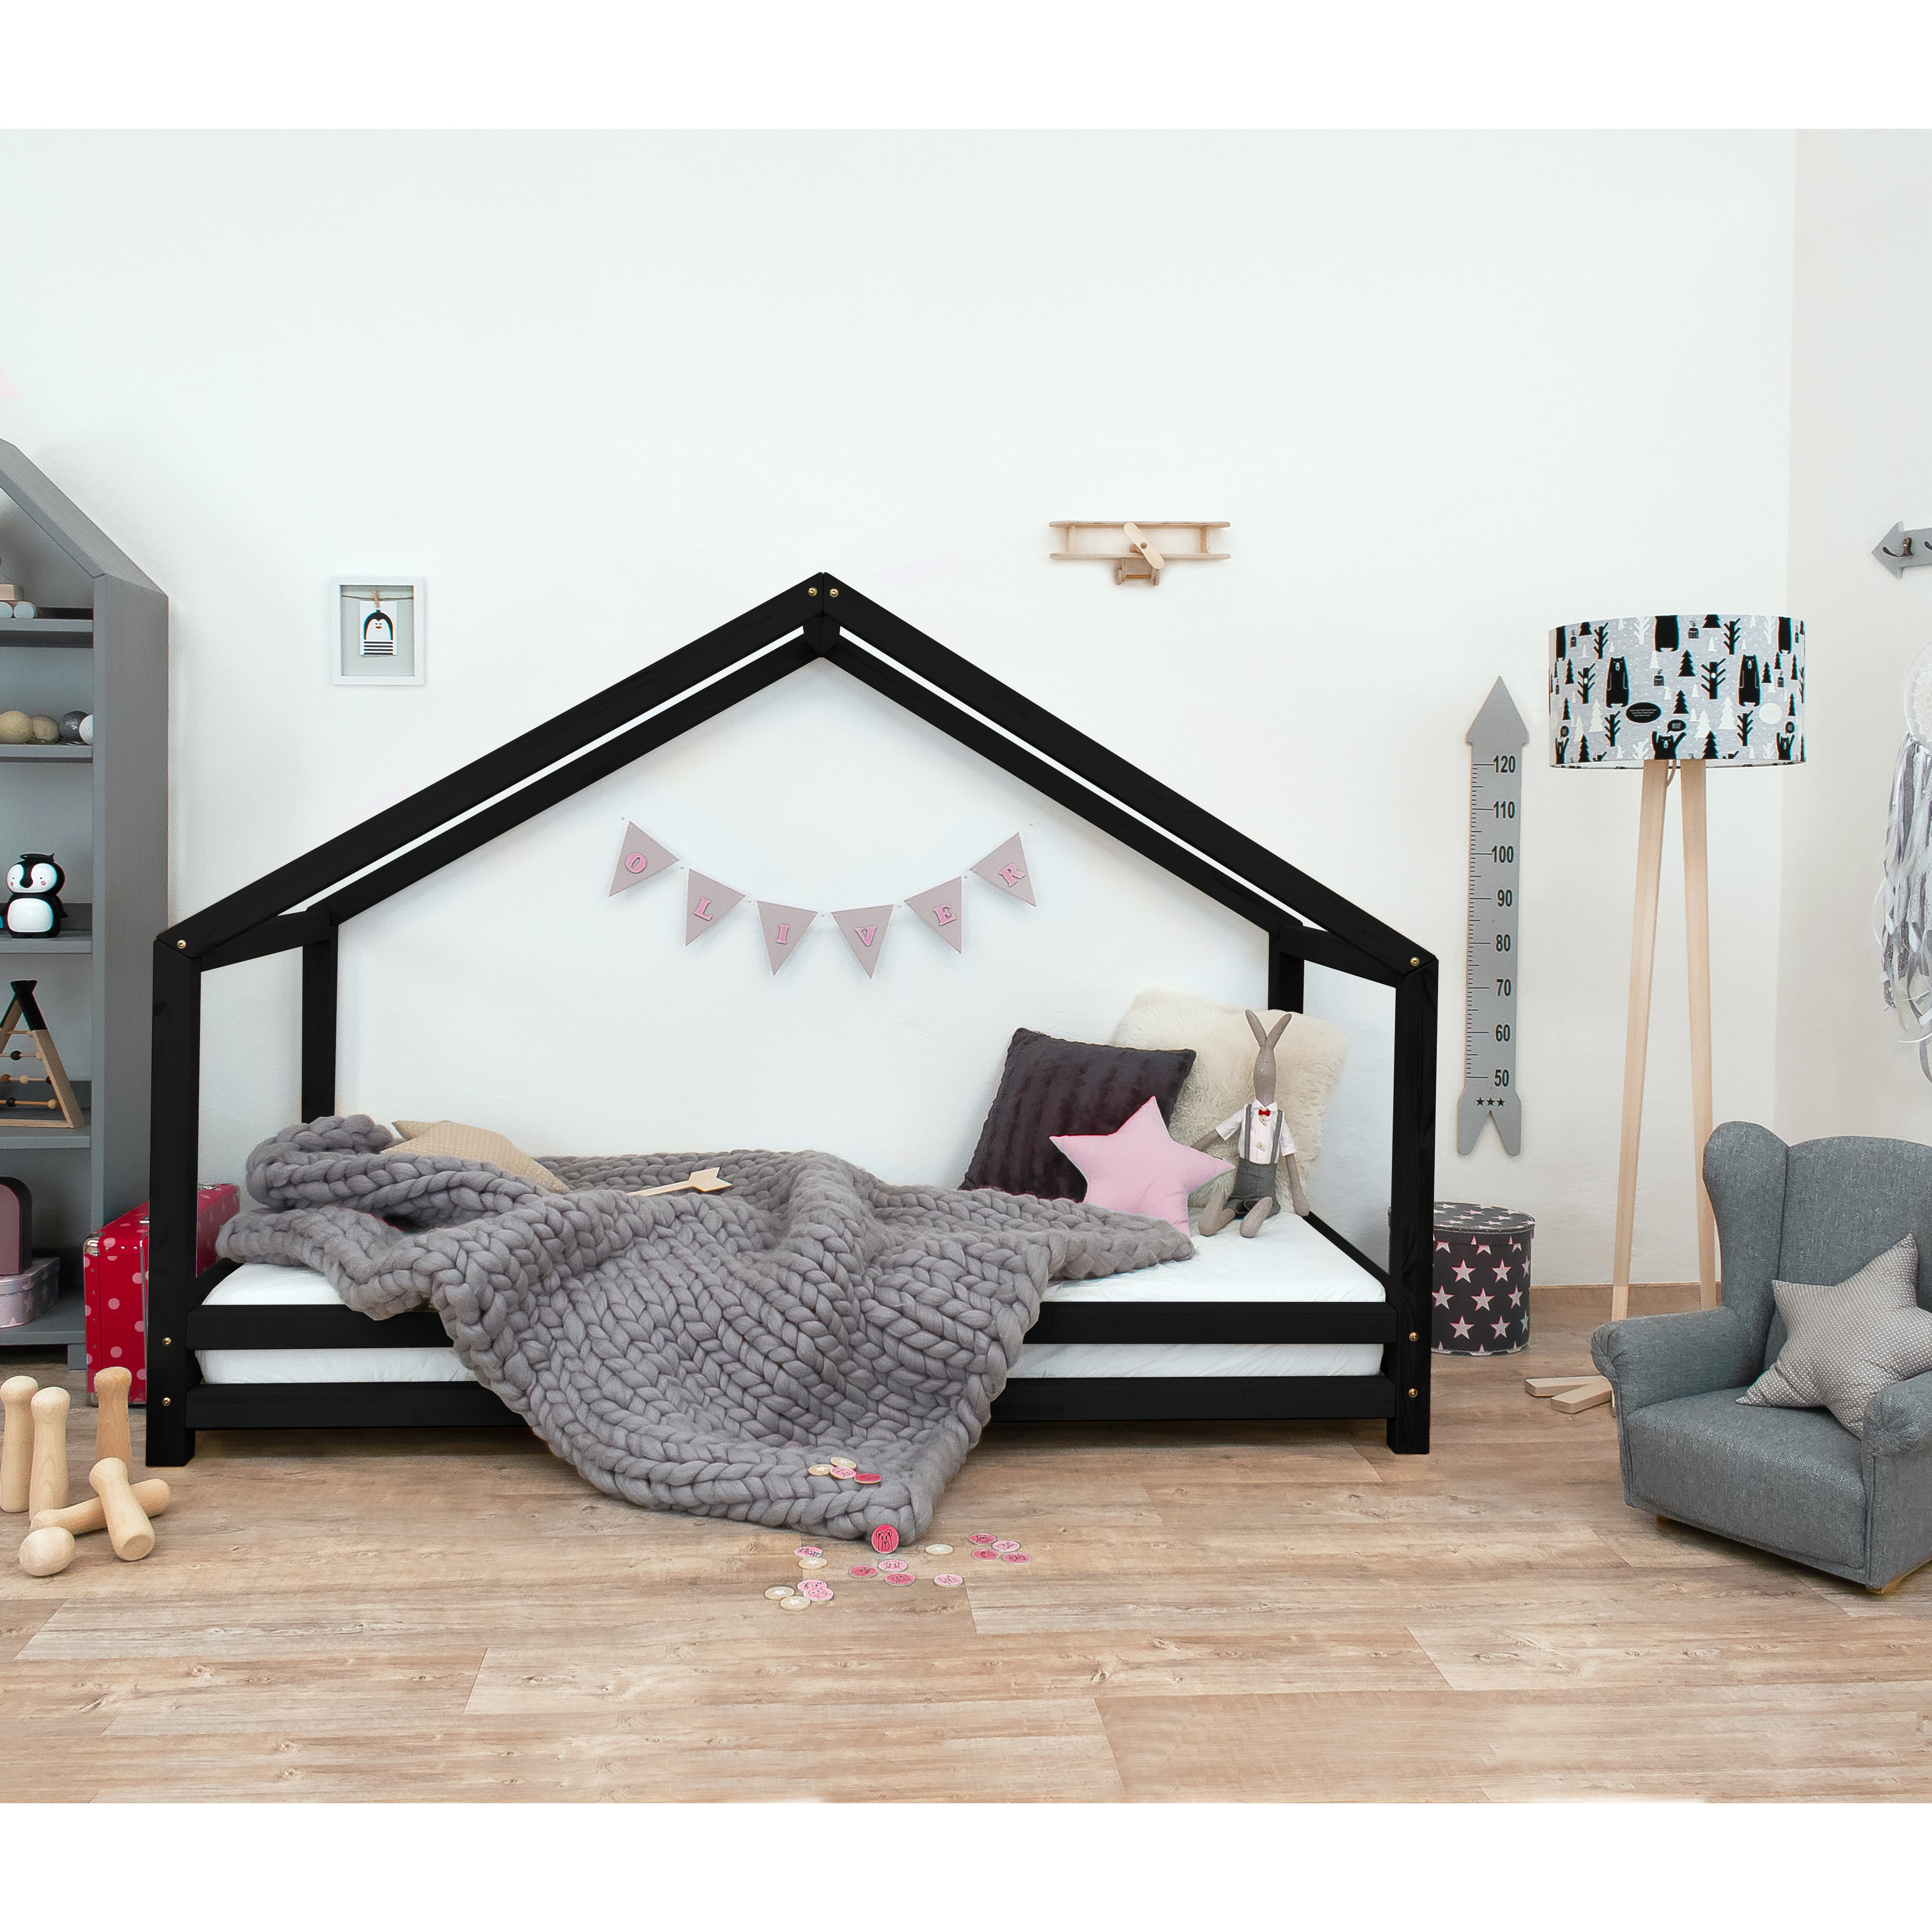 Sidy - Kids House Bed